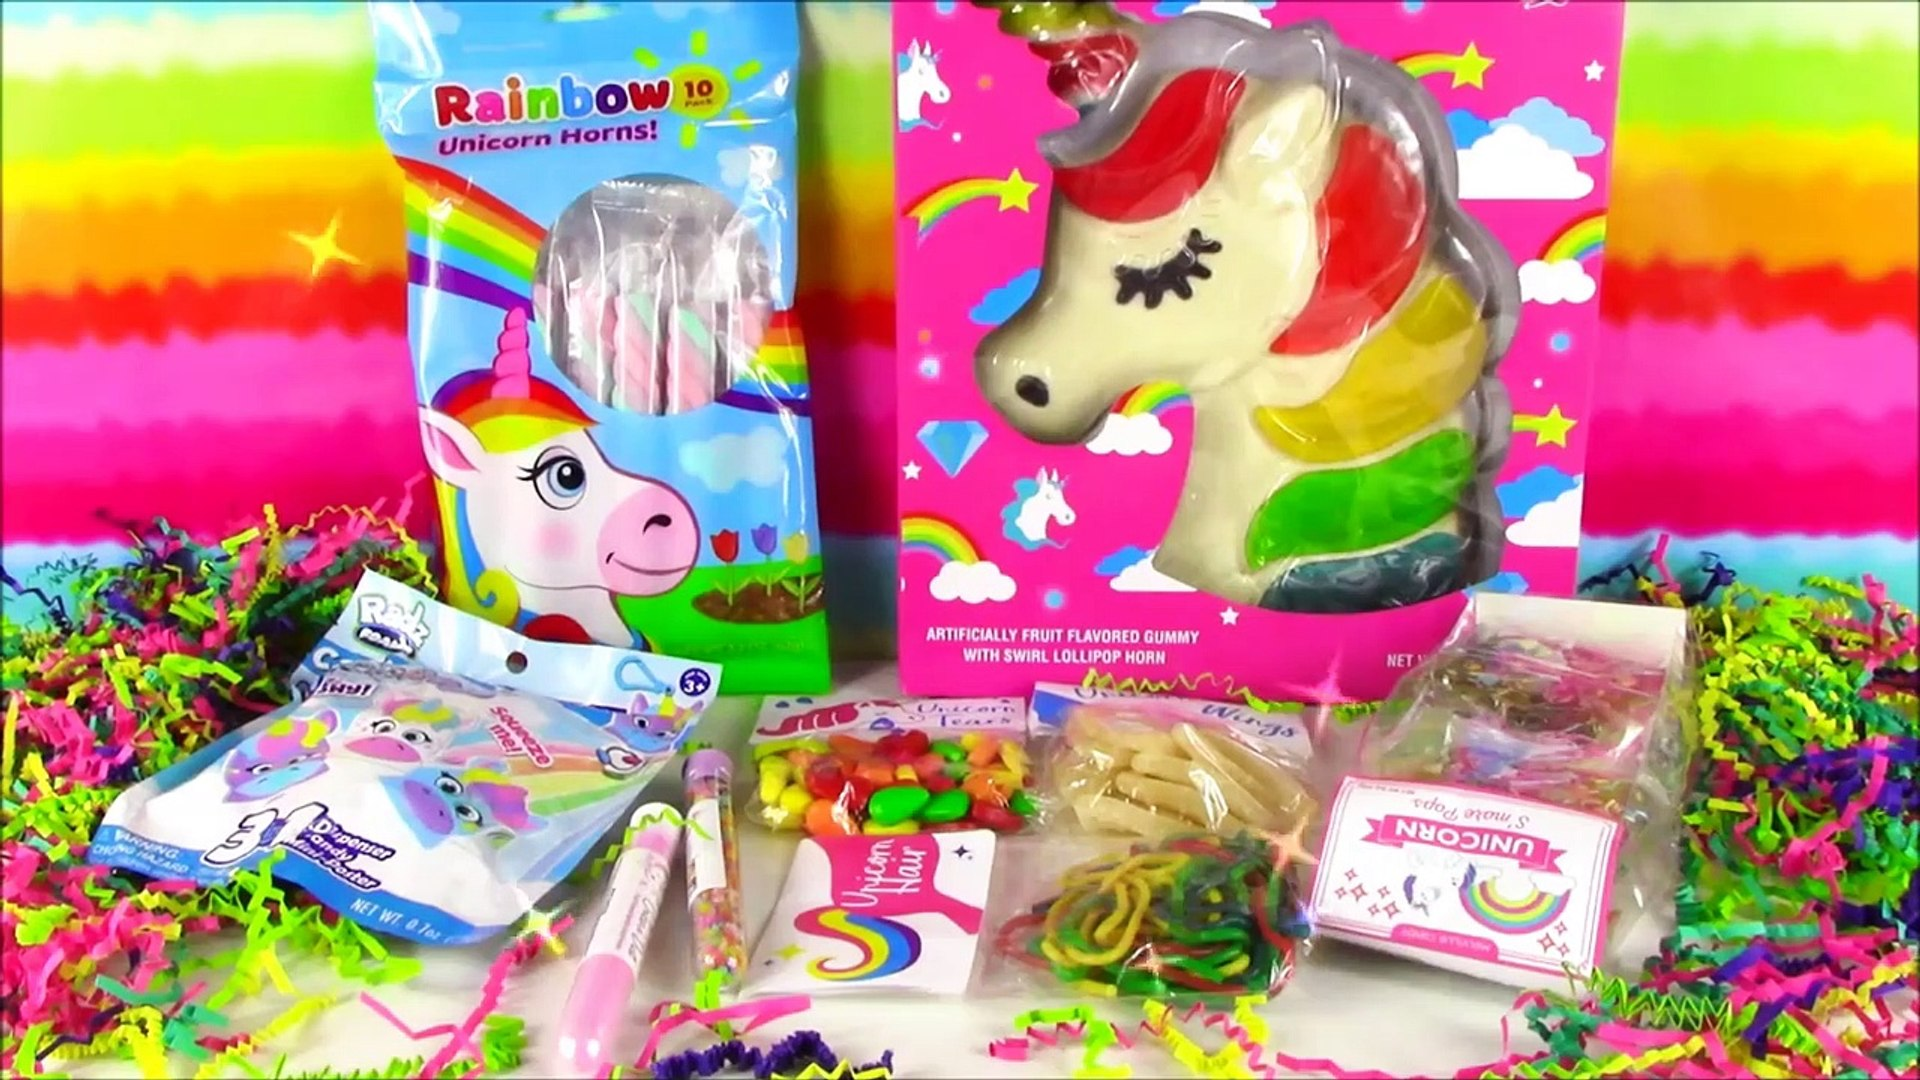 A Lot Of New Candy 10! Huge Unicorn Gummy! Unicorn S'mores POP! Sour Hair! Unico